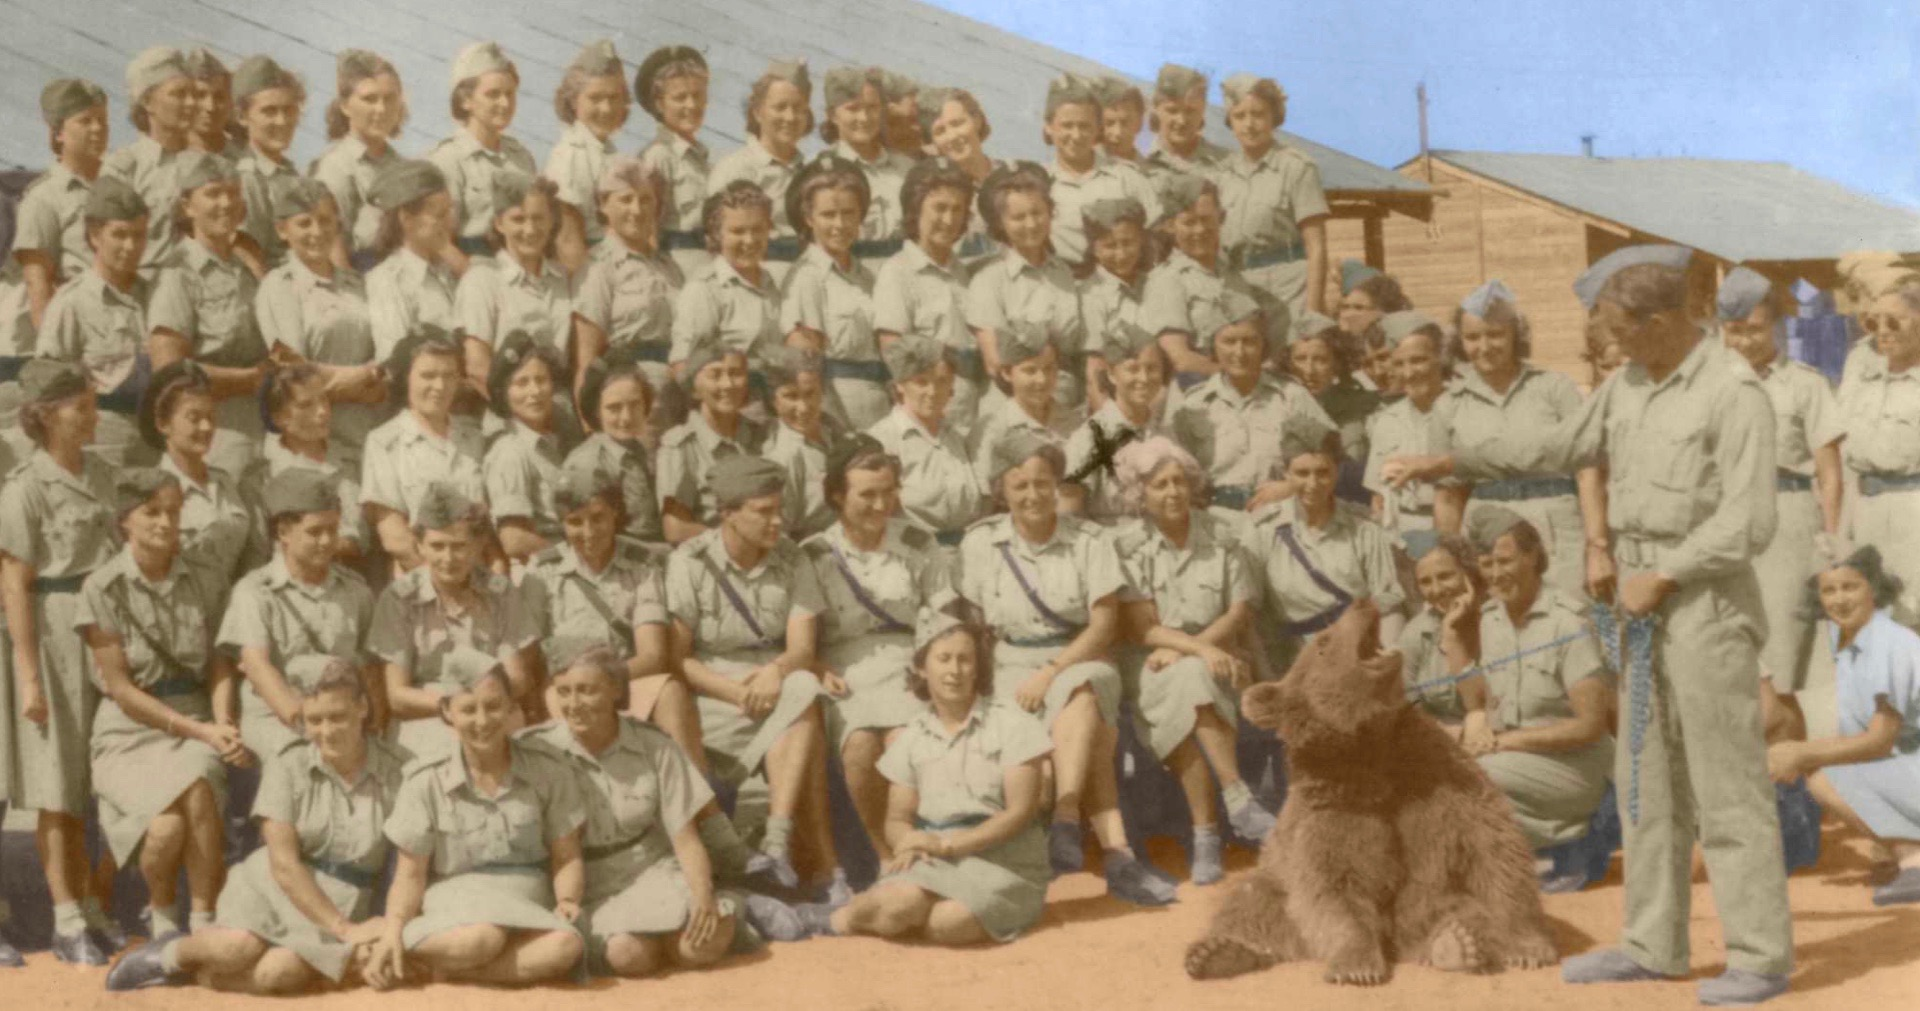 Wojtek – The Bear That Fought The Nazis